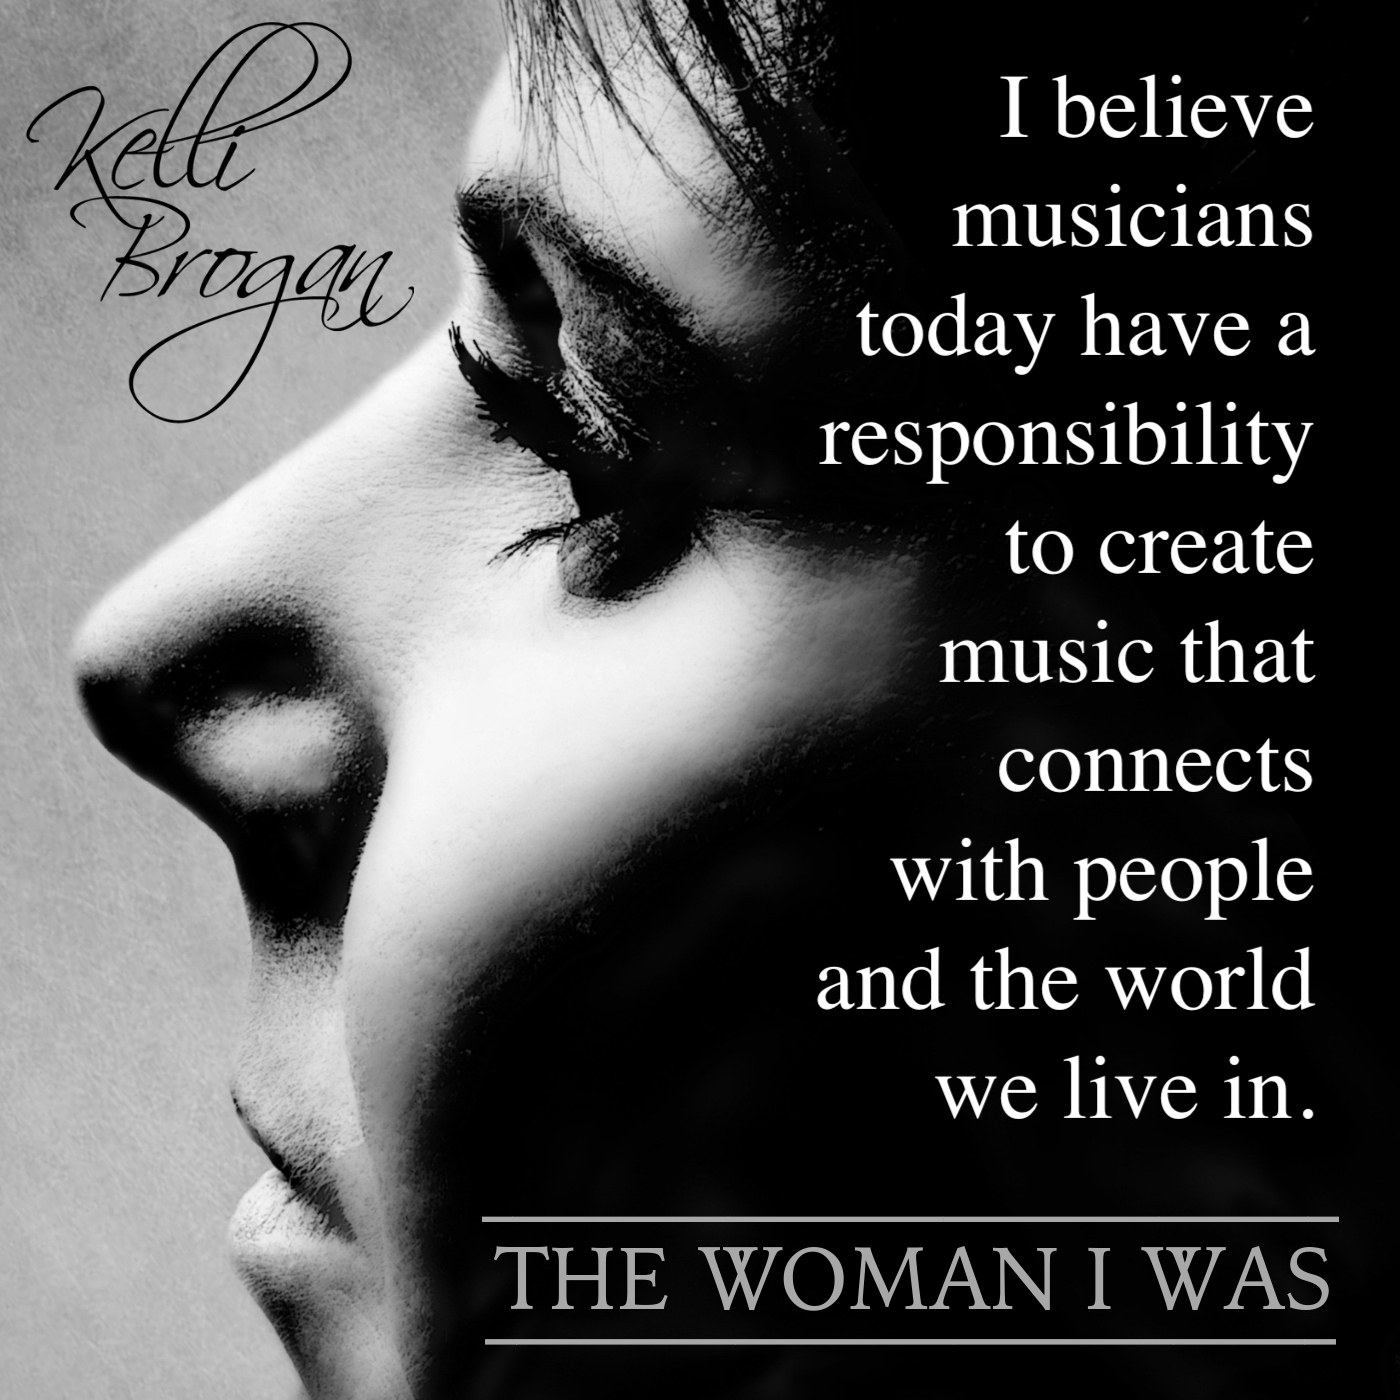 Kelli Brogan music quote avaliveradio.jpeg